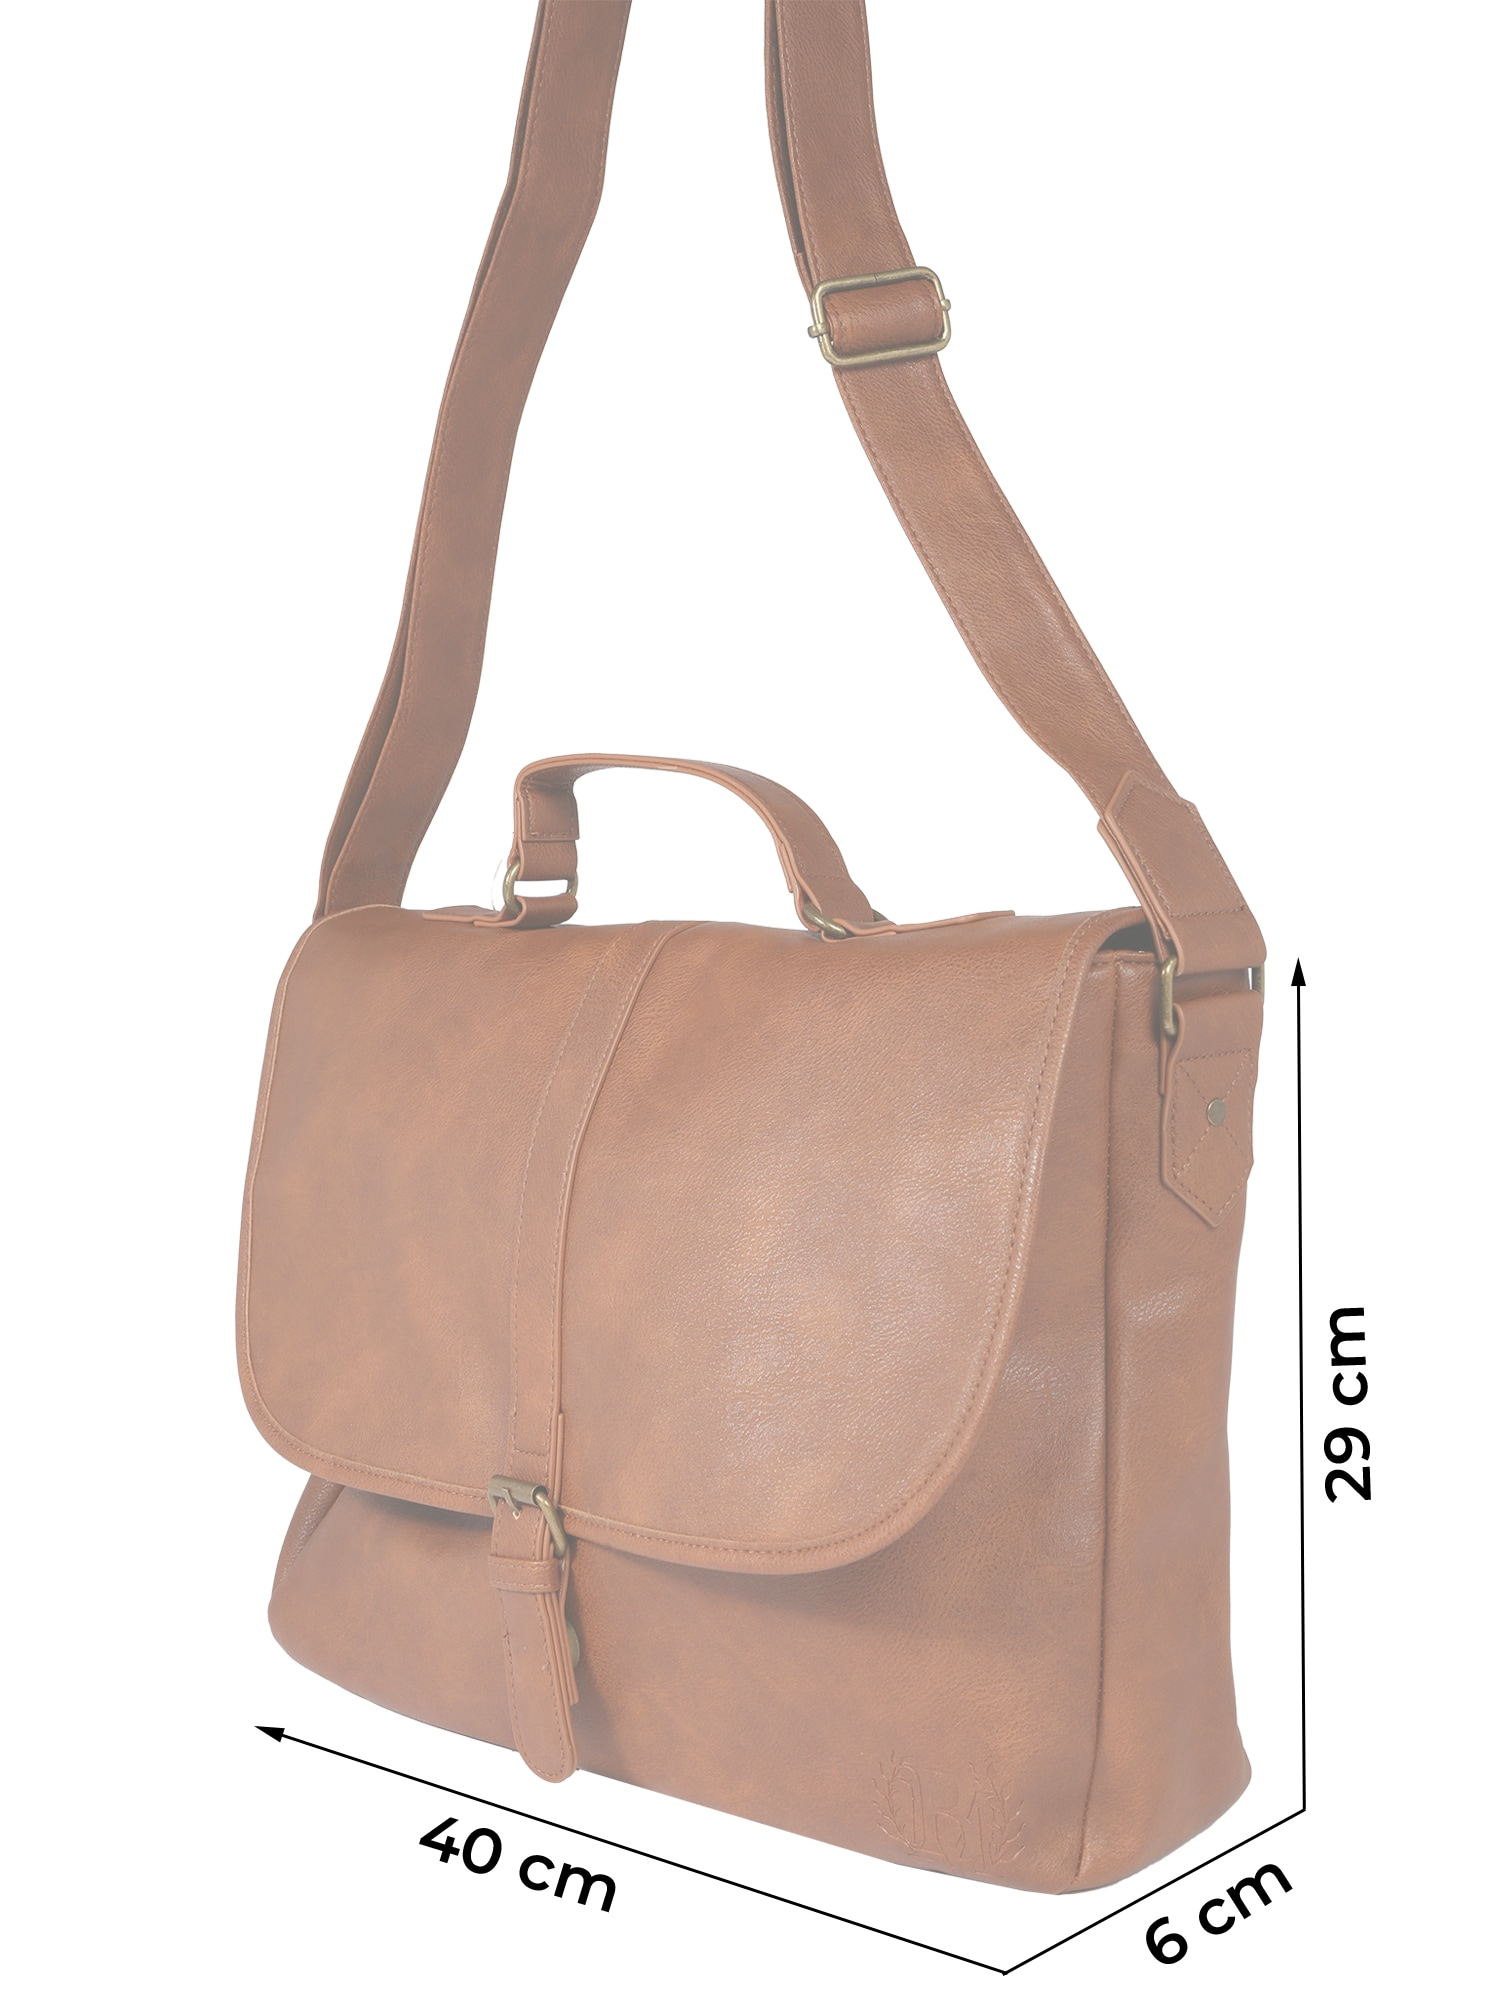 burton menswear london - Tasche 'TAN PU MESSENGER    '